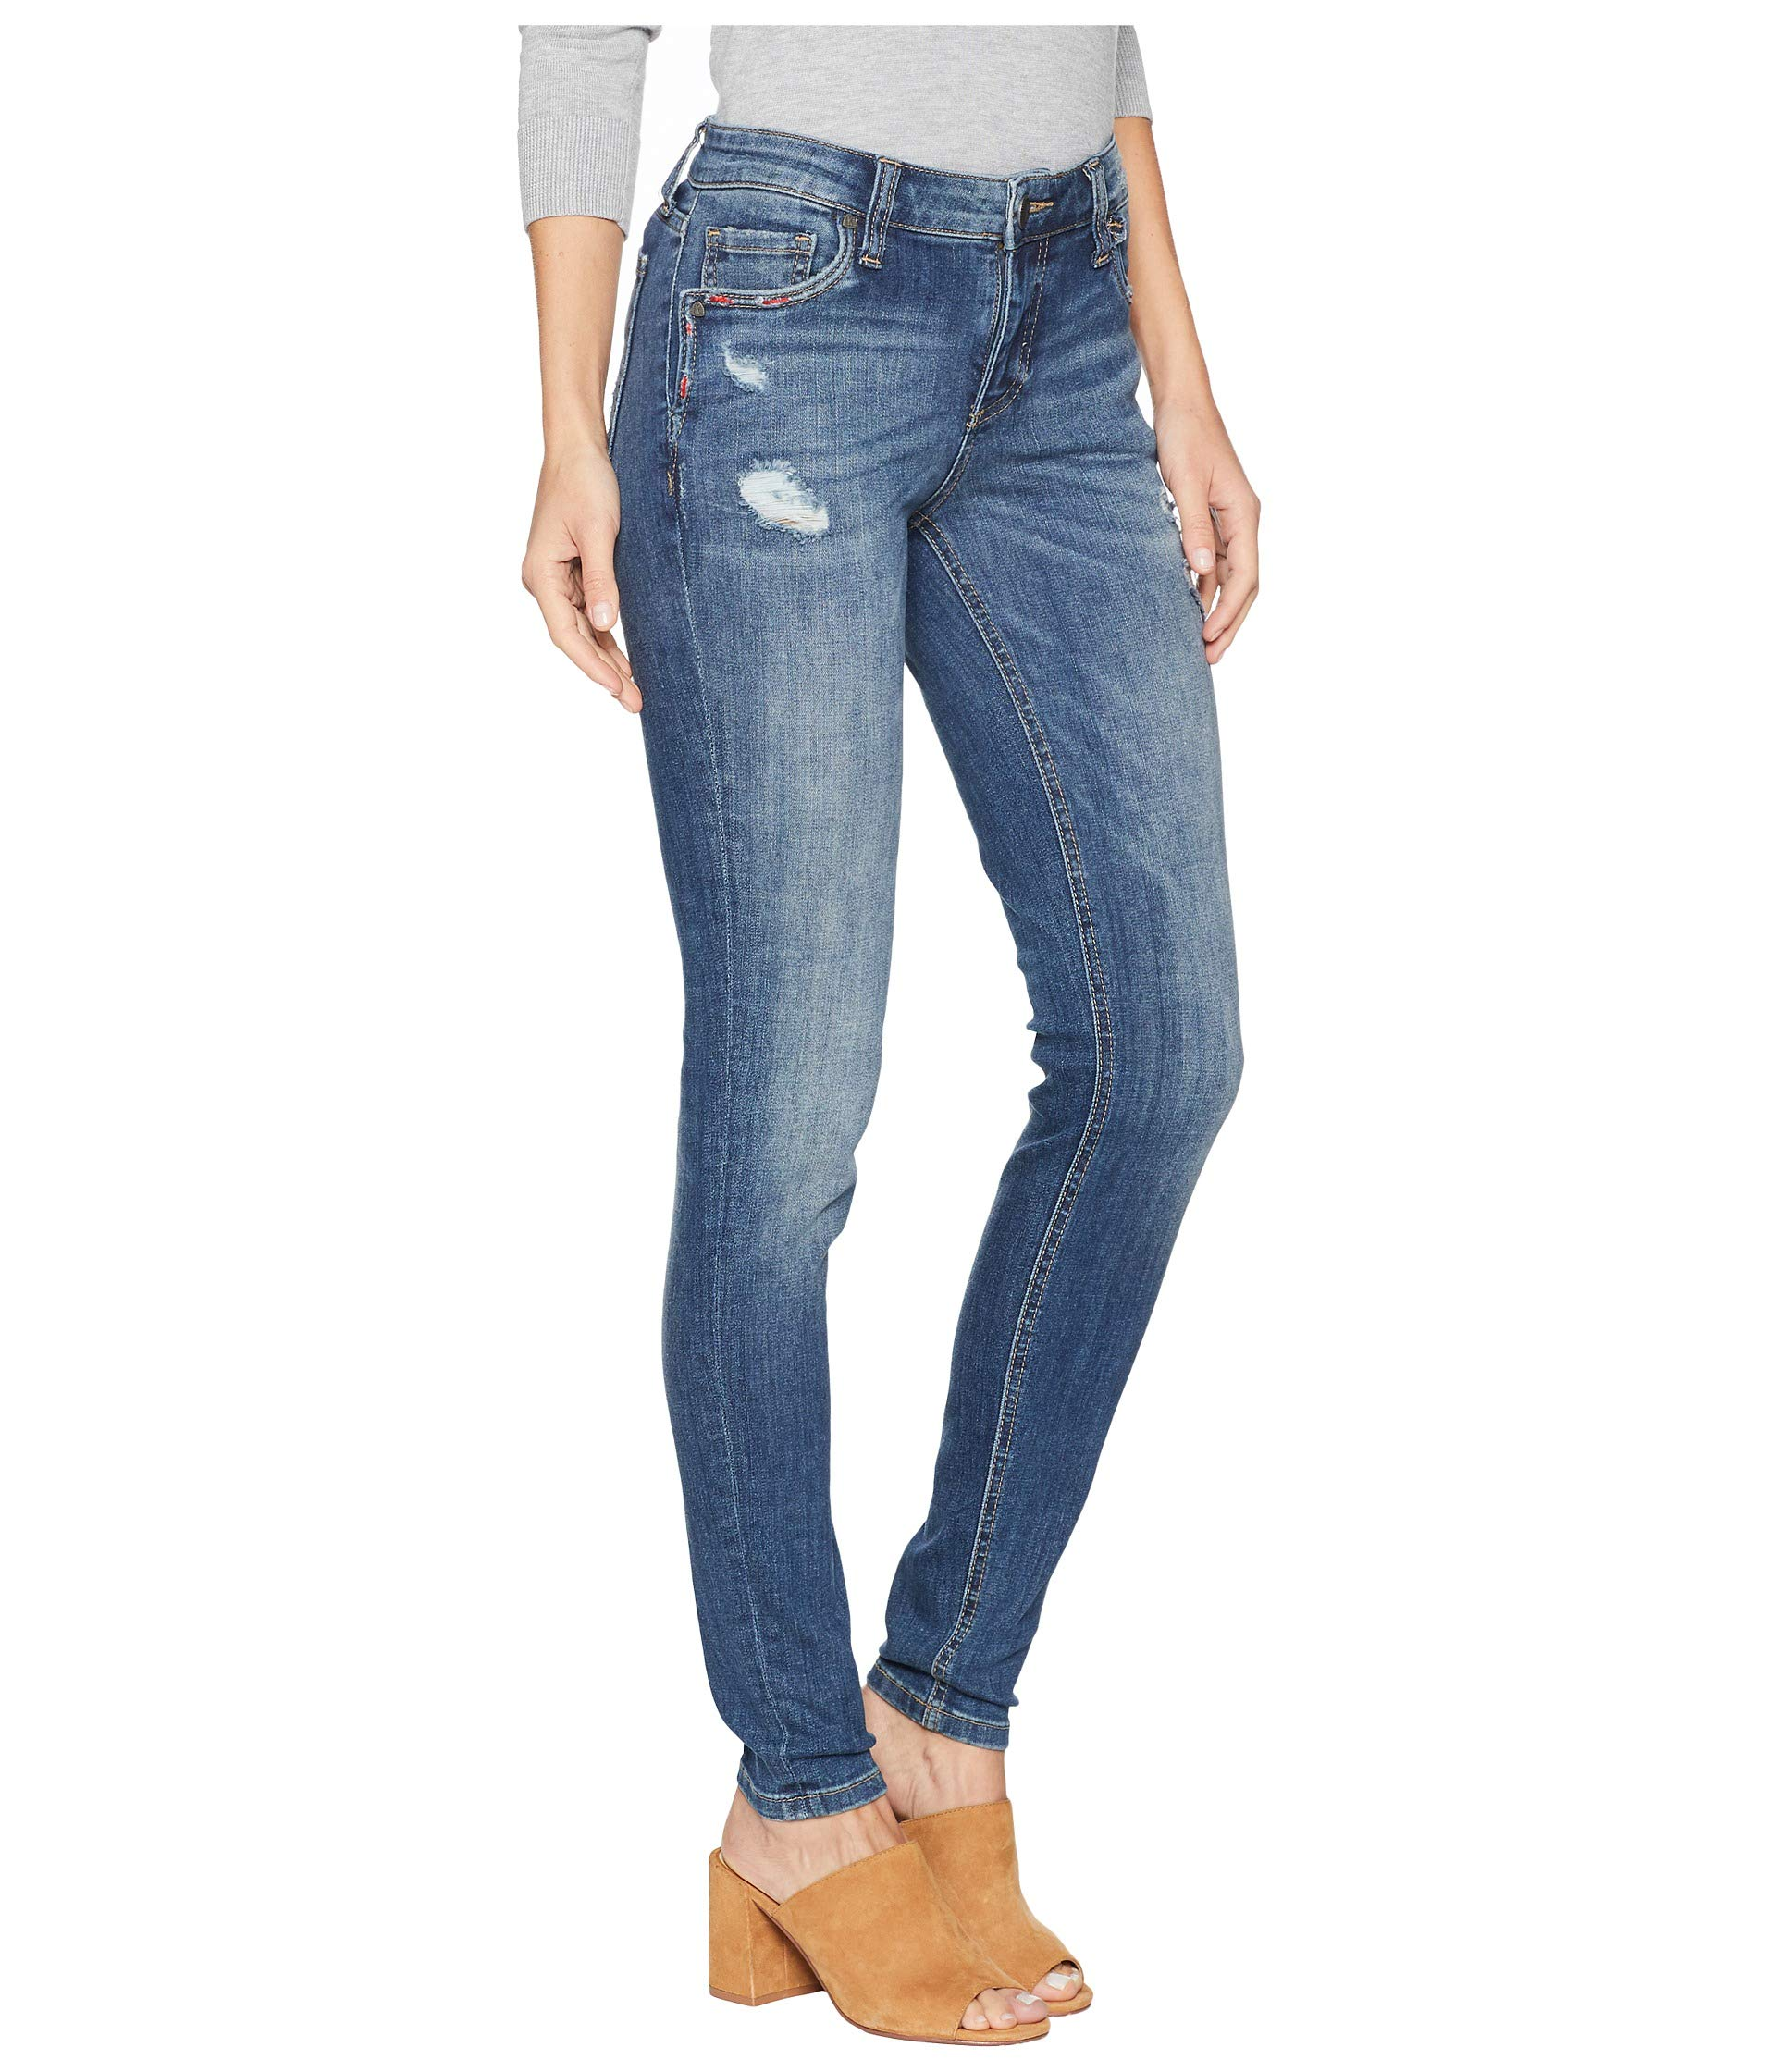 From The Toothpick In medium Mia Rallied Pocket Kloth Jeans Rallied Notch Skinny Wash Kut Front Base d5qIwRv